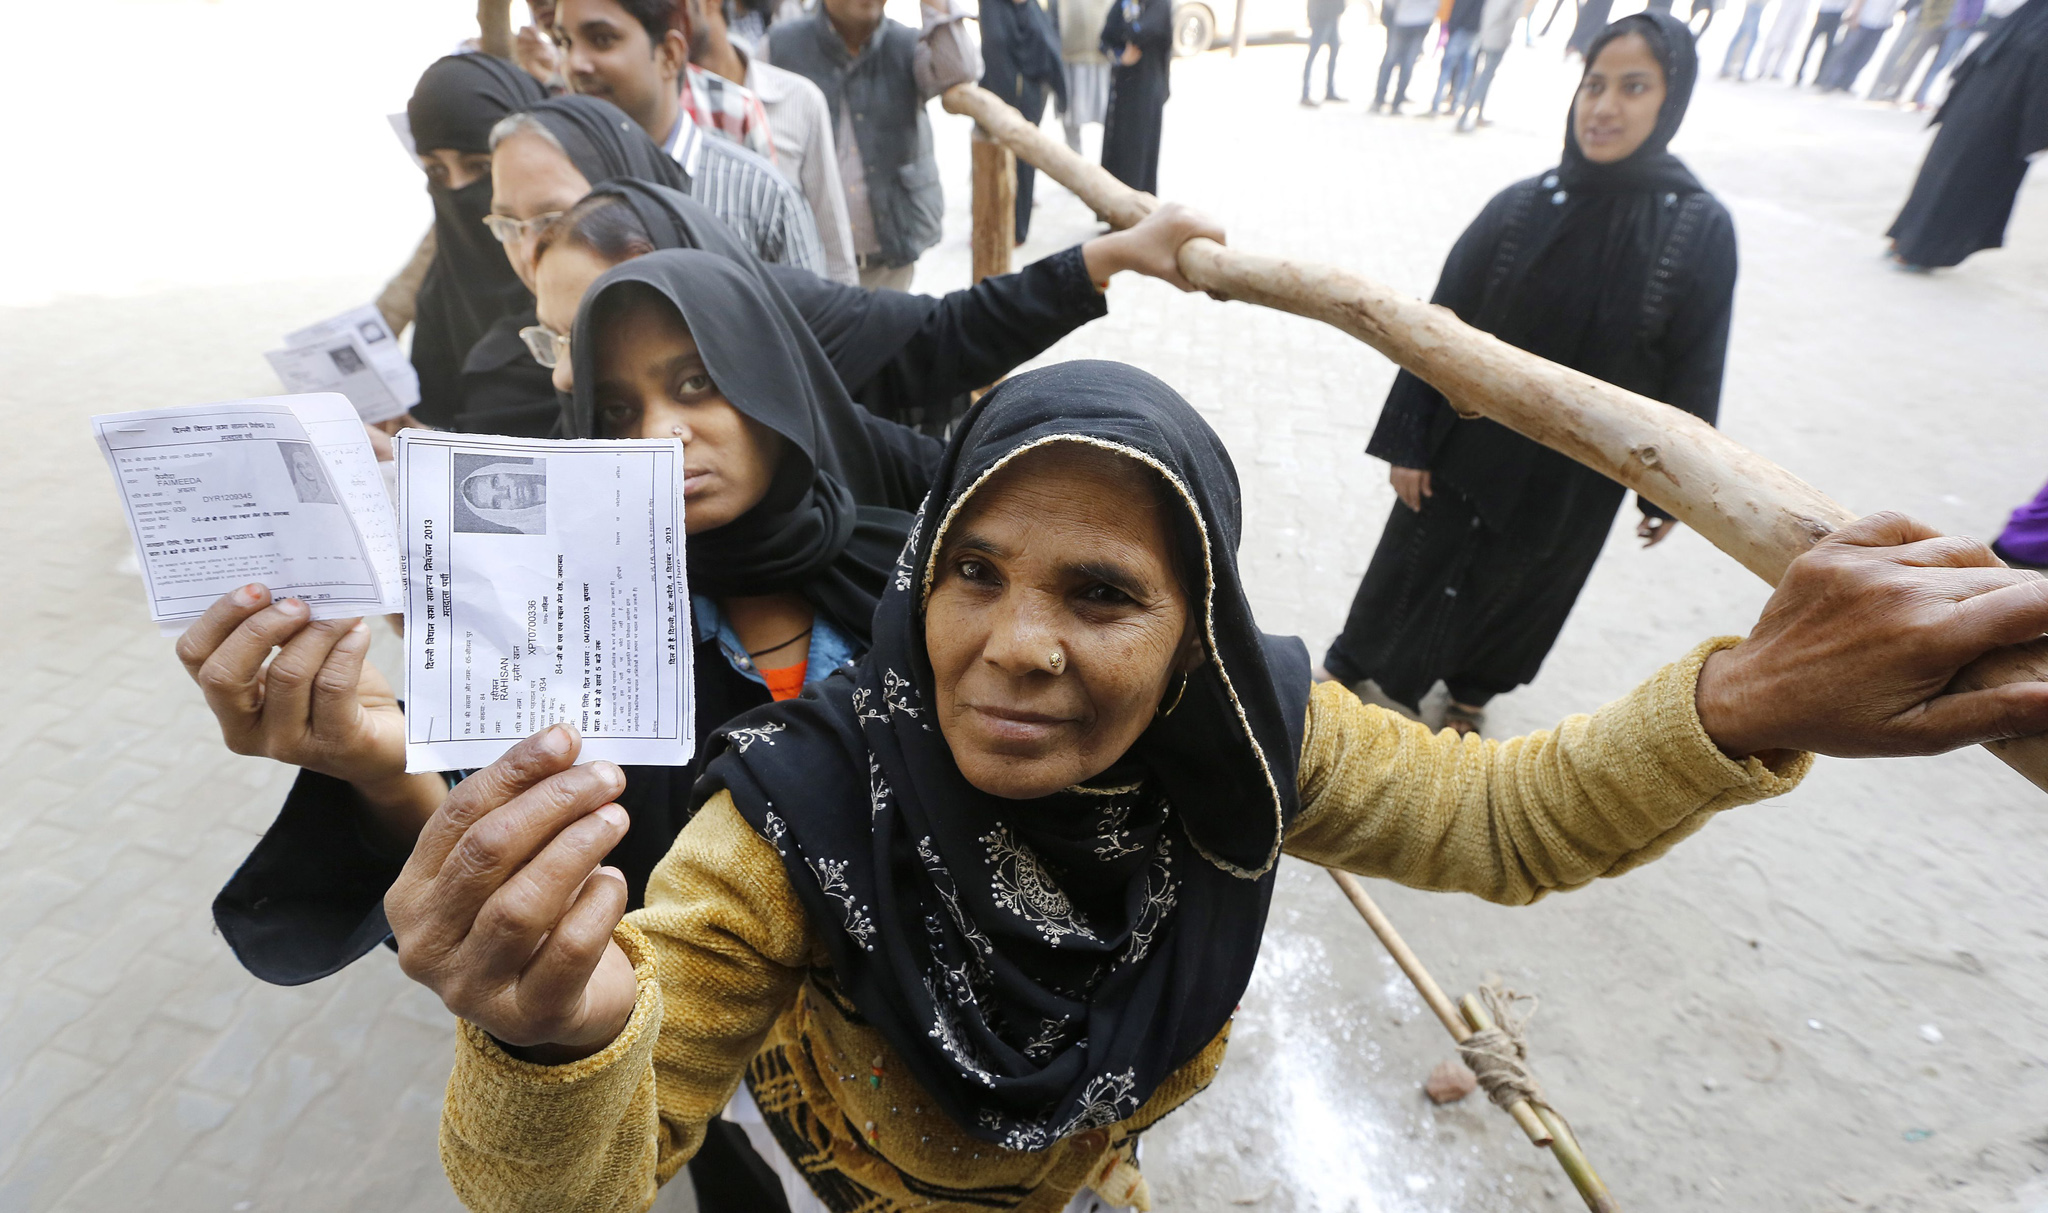 Voters line up to show their voter ID cards at a polling station in Seelampur, east Delhi, India. State assembly elections were held in the Indian capital, regarded as a test for general elections scheduled for 2014.